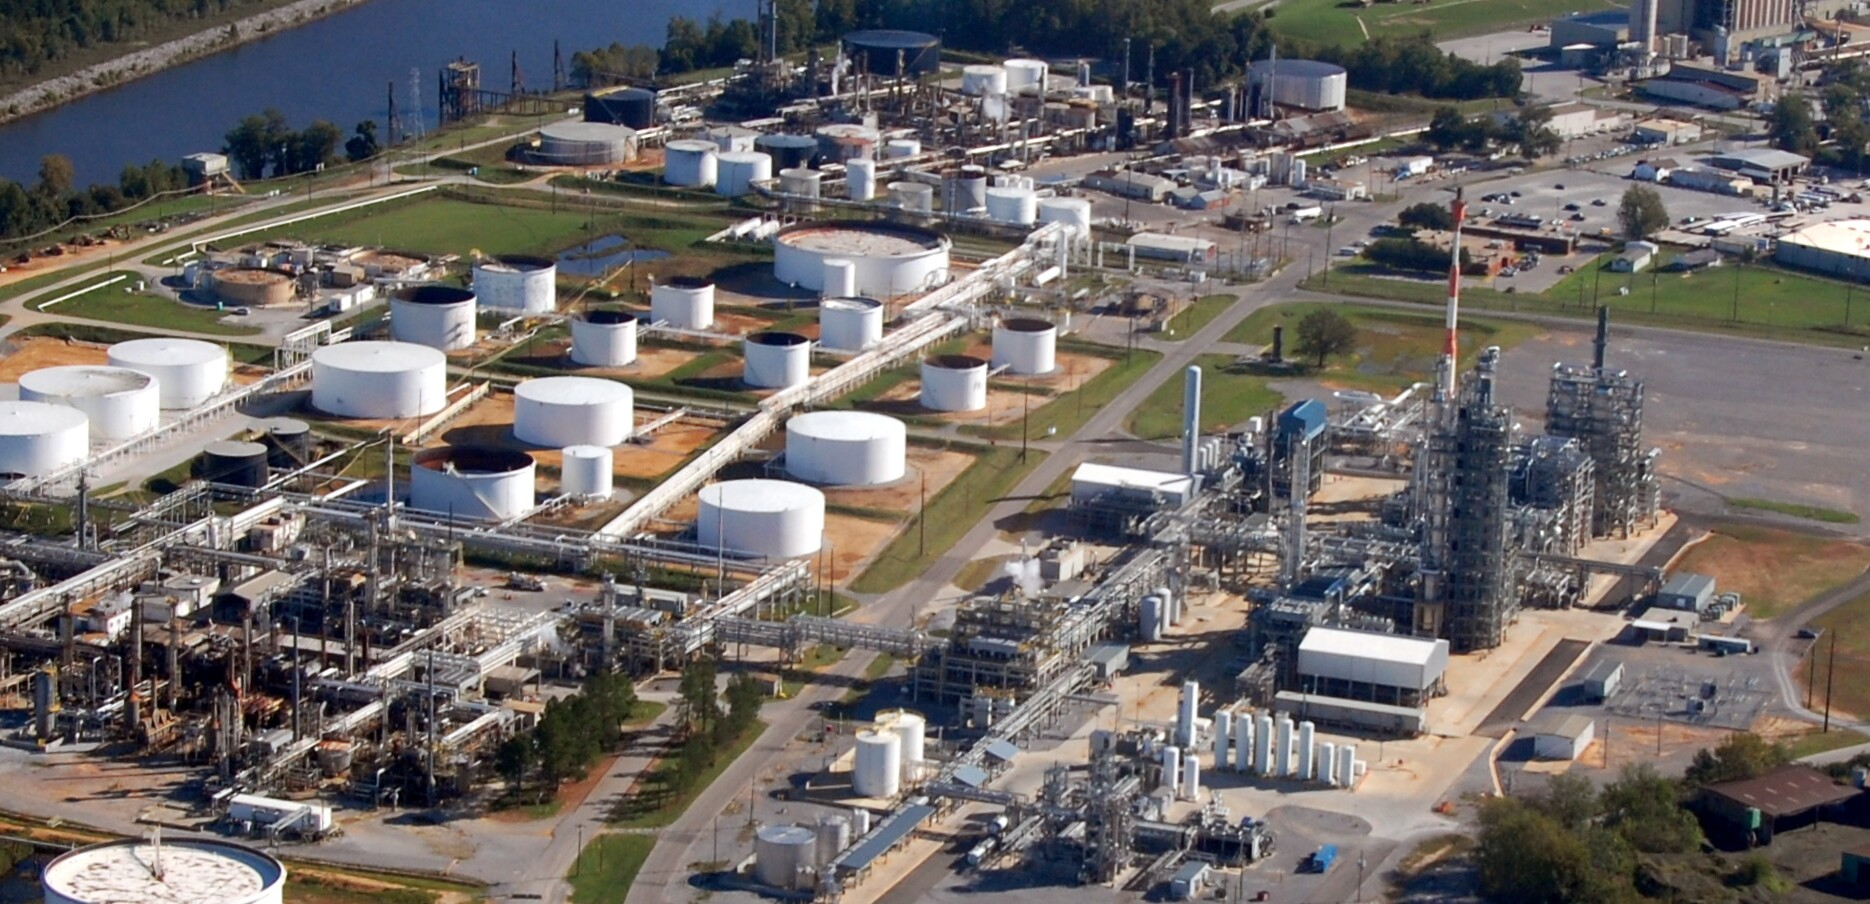 Hunt refinery with UCG Oxygen and Nitrogen plant in lower left of photo